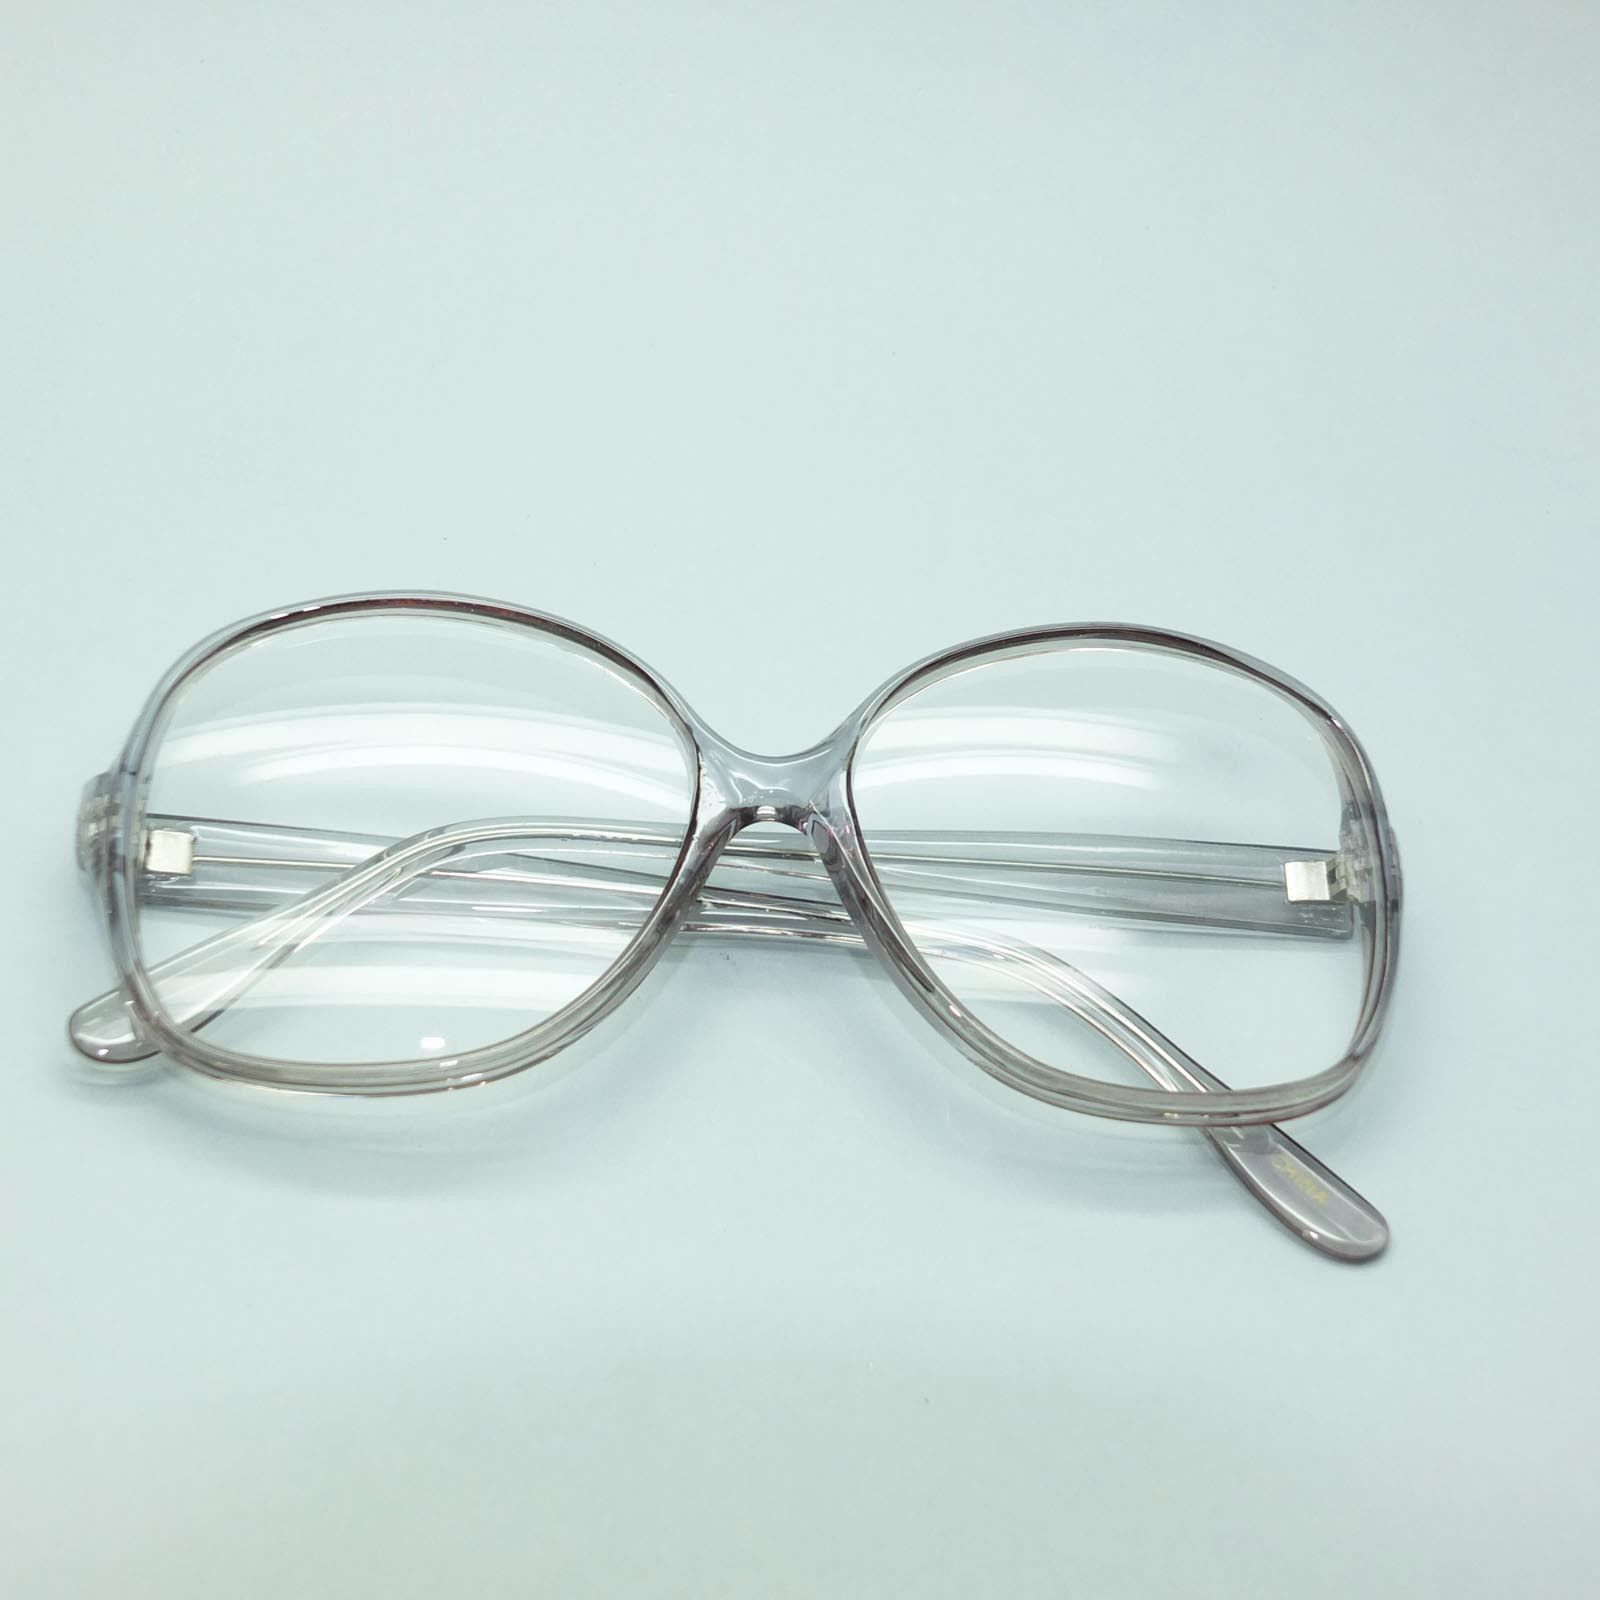 Gray Frame Reading Glasses : Reading Glasses Gray Large Oversize Grand Frame Acrylic ...